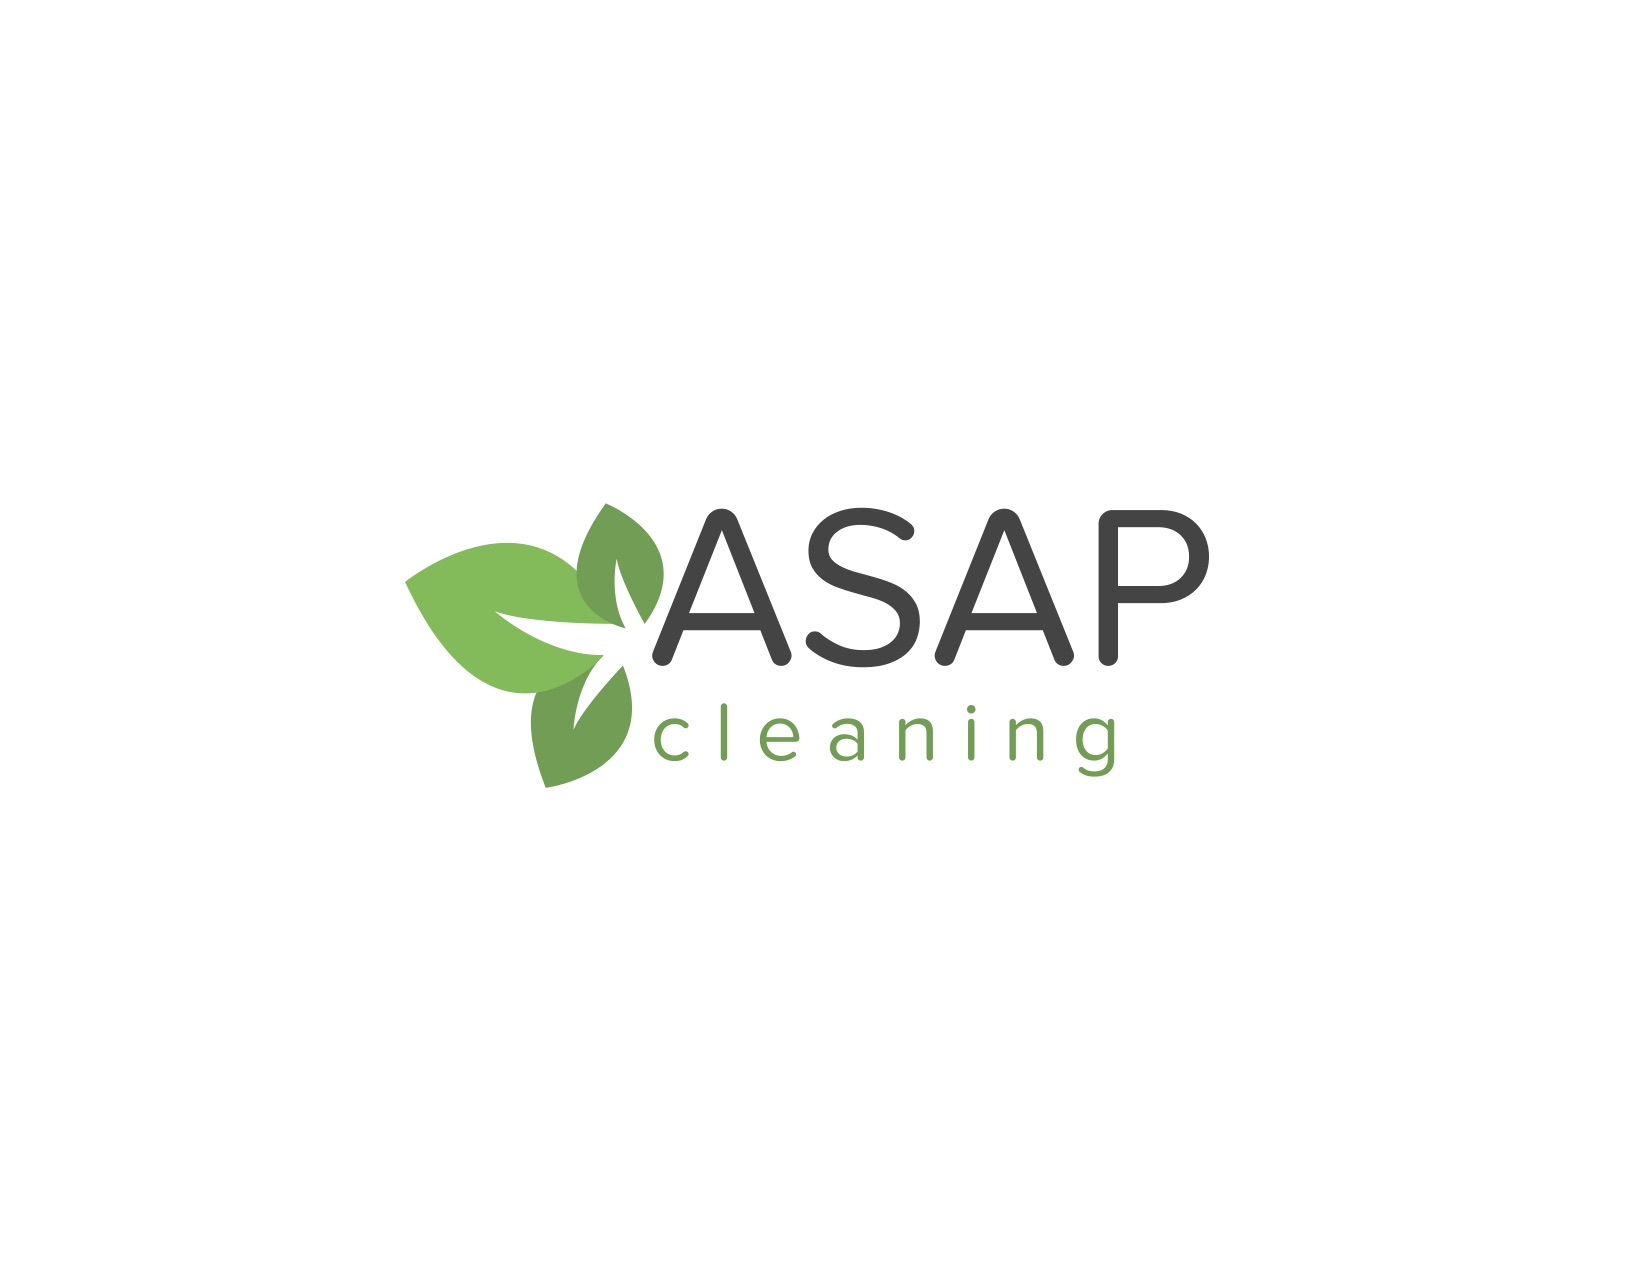 ASAP Cleaning Services